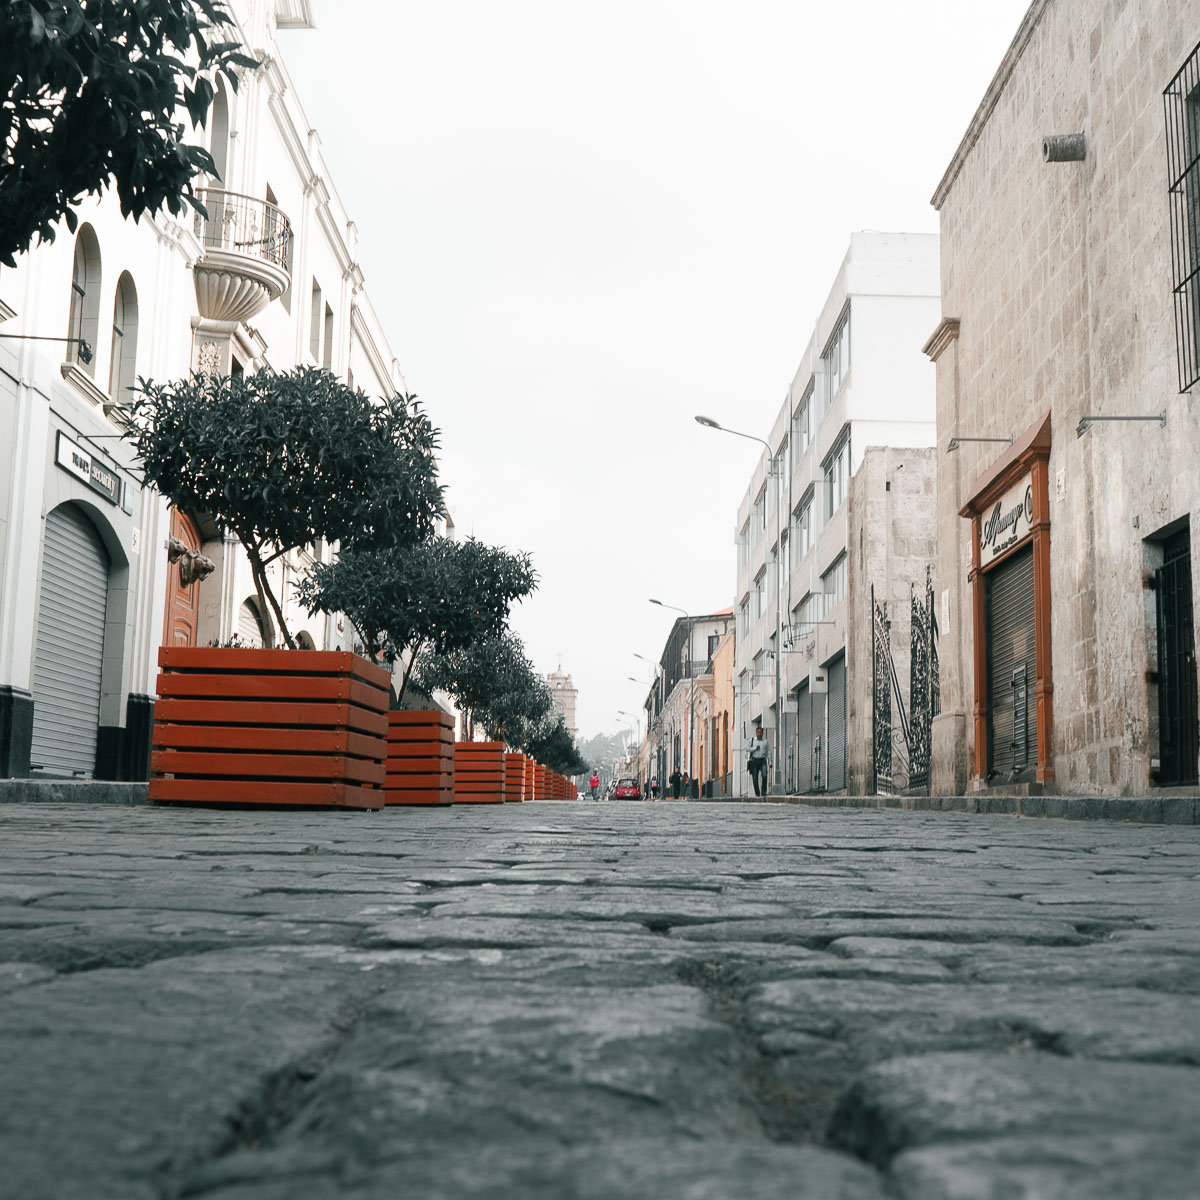 Low-angle street photography in Peru